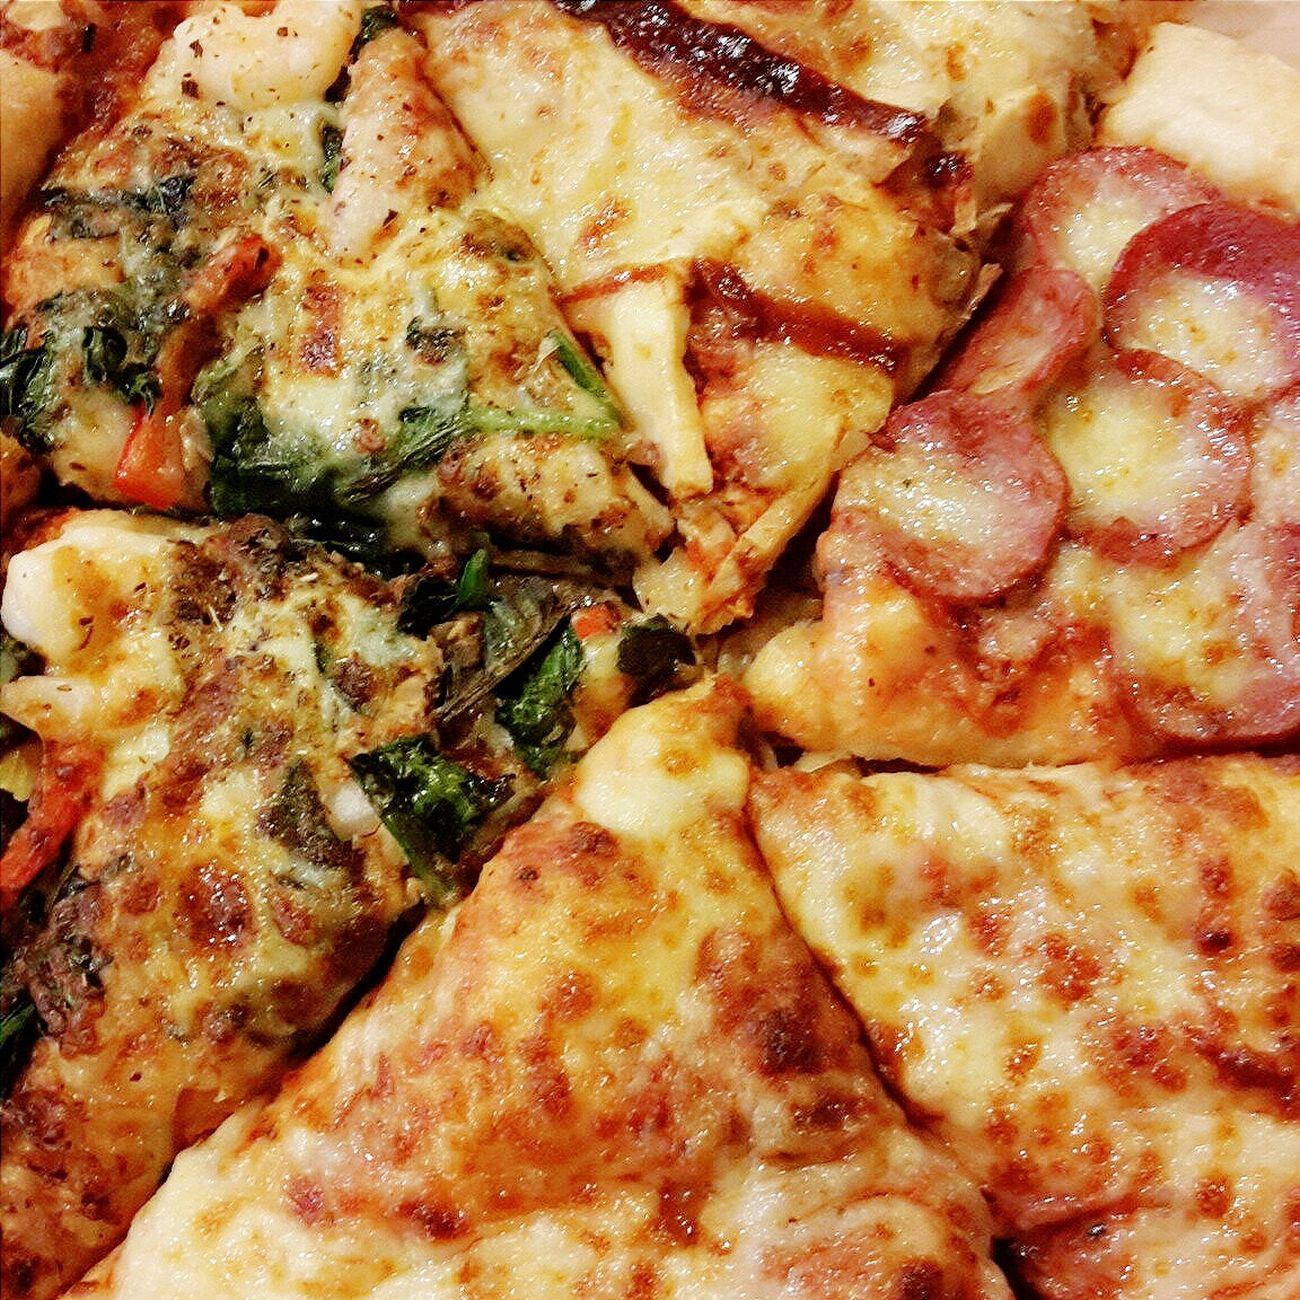 Pizza Popular Photos Pizza Time Pizzalover Pezzo Foodgasm Foodphotography Foodie Vscocam Followme